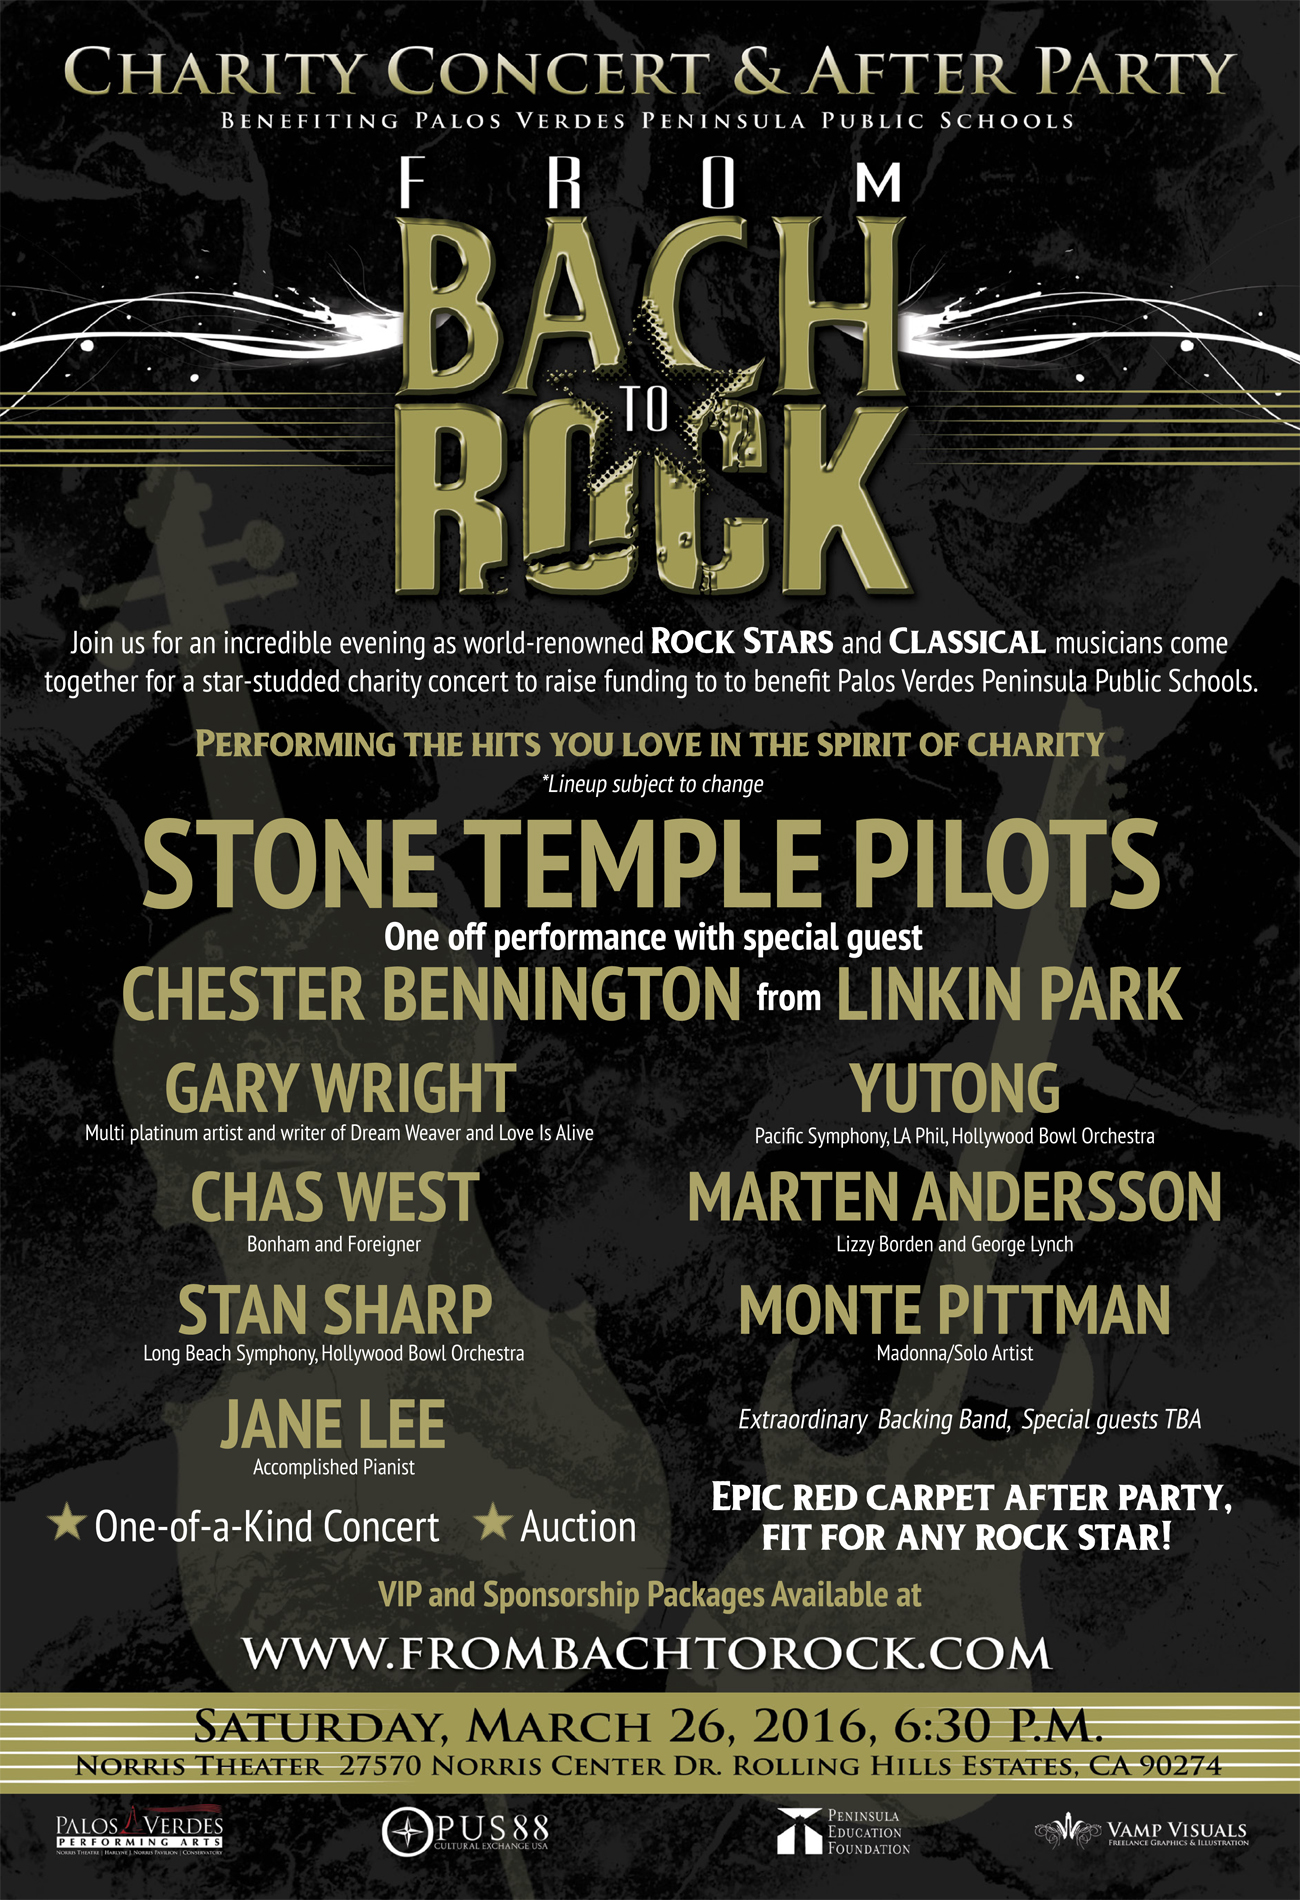 From Bach To Rock 2016